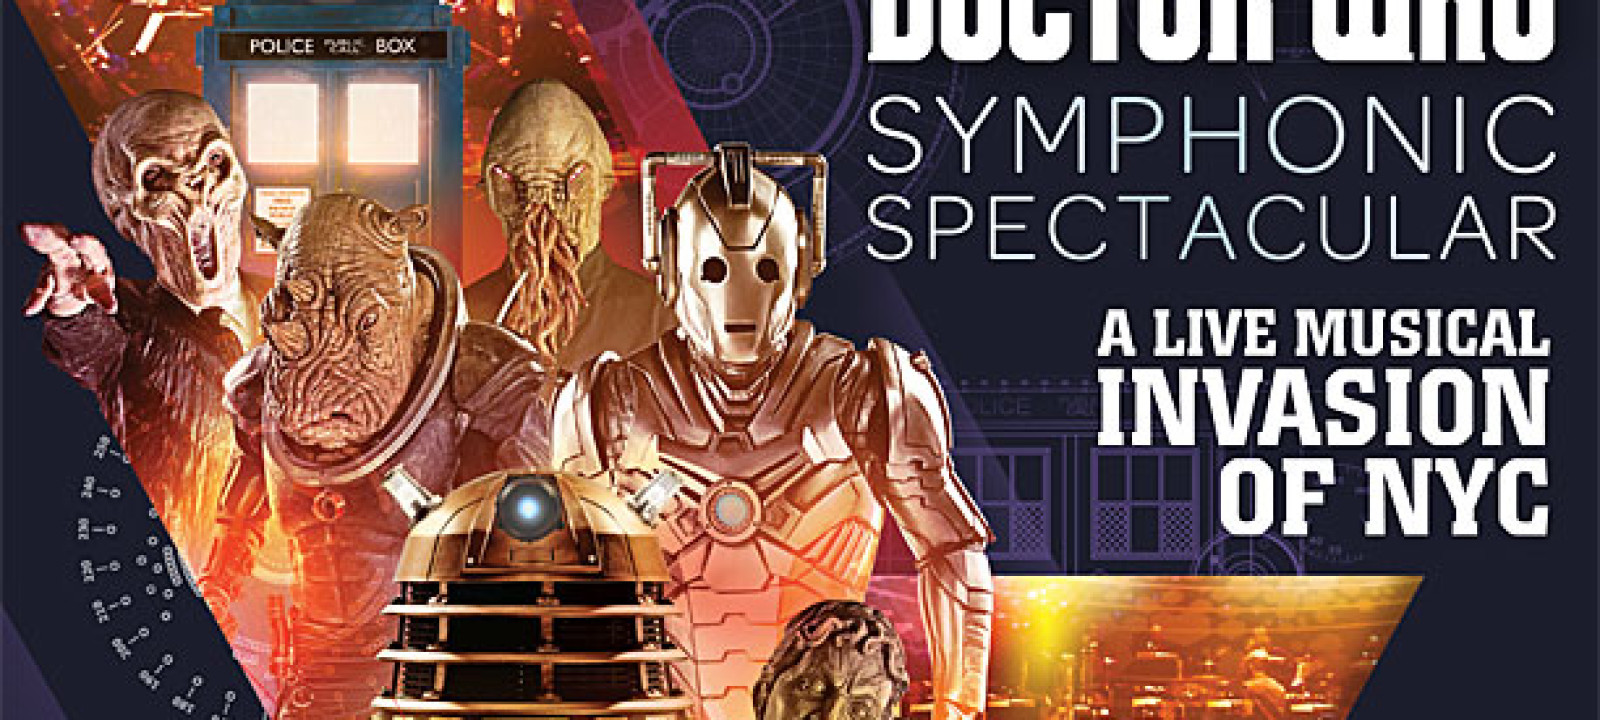 'Doctor Who' Symphonic Spectacular poster (Pic: BBC)